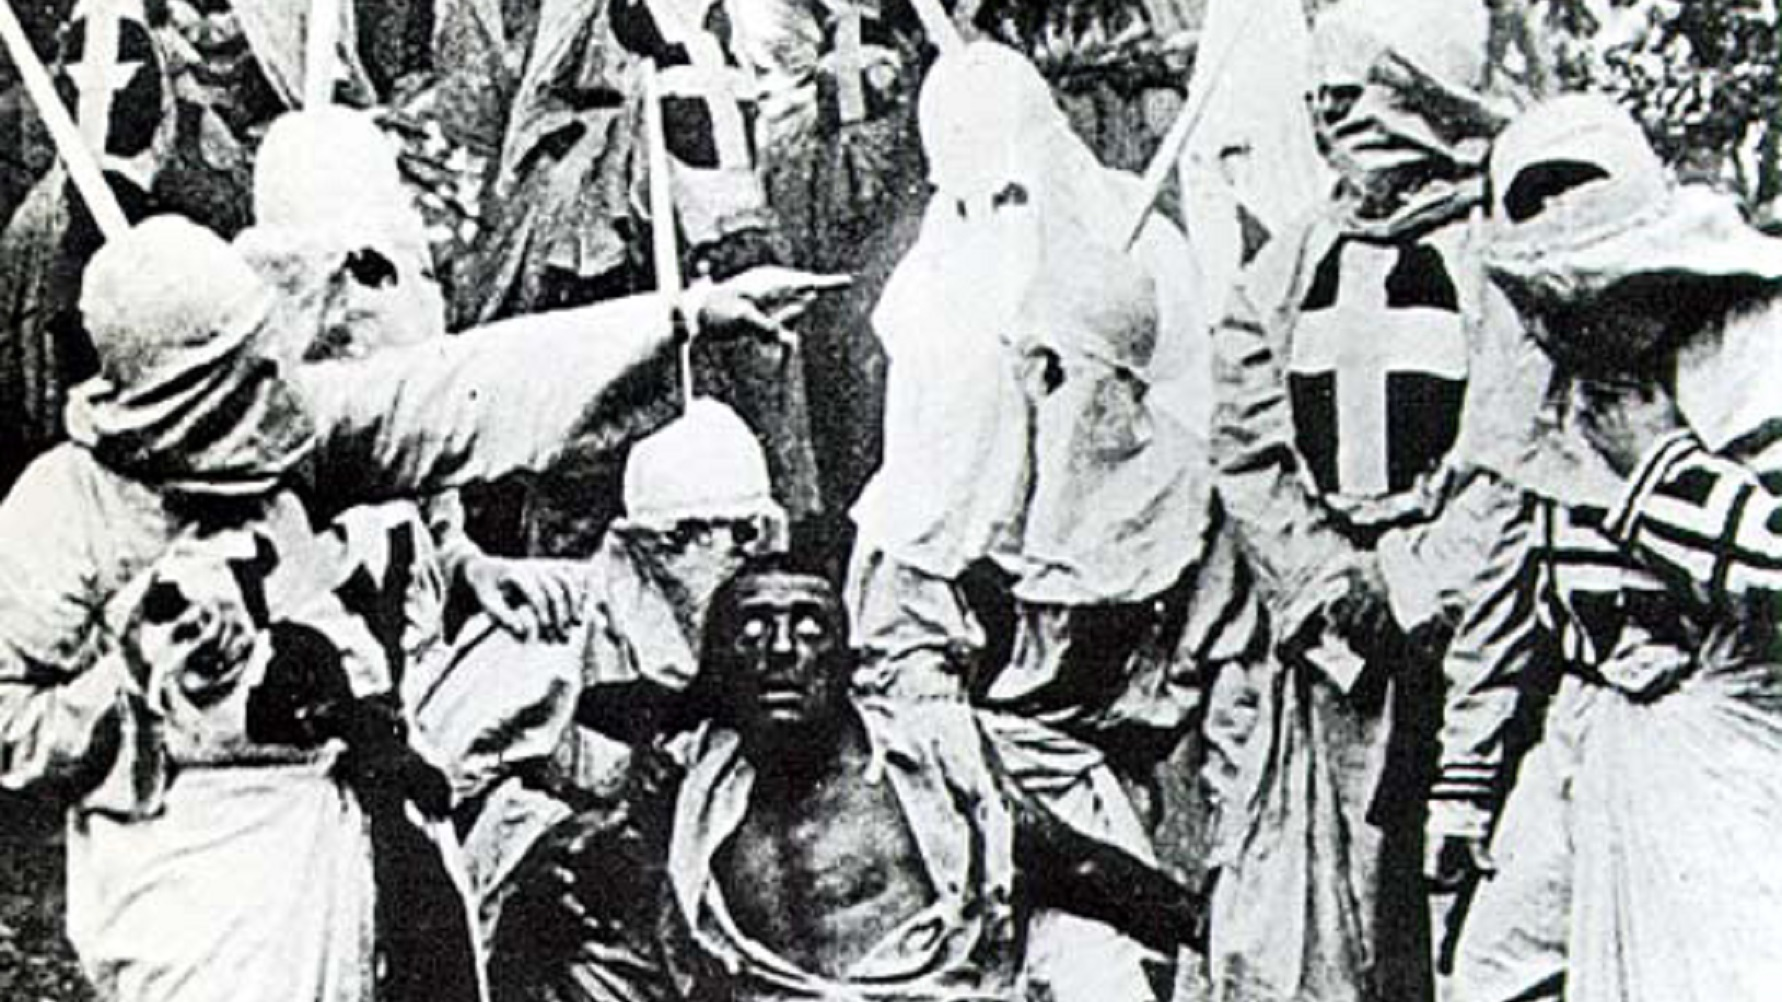 http://assets4.bigthink.com/system/idea_thumbnails/57817/original/Birth-of-a-nation-klan-and-black-man--CROP.jpg?1422588214